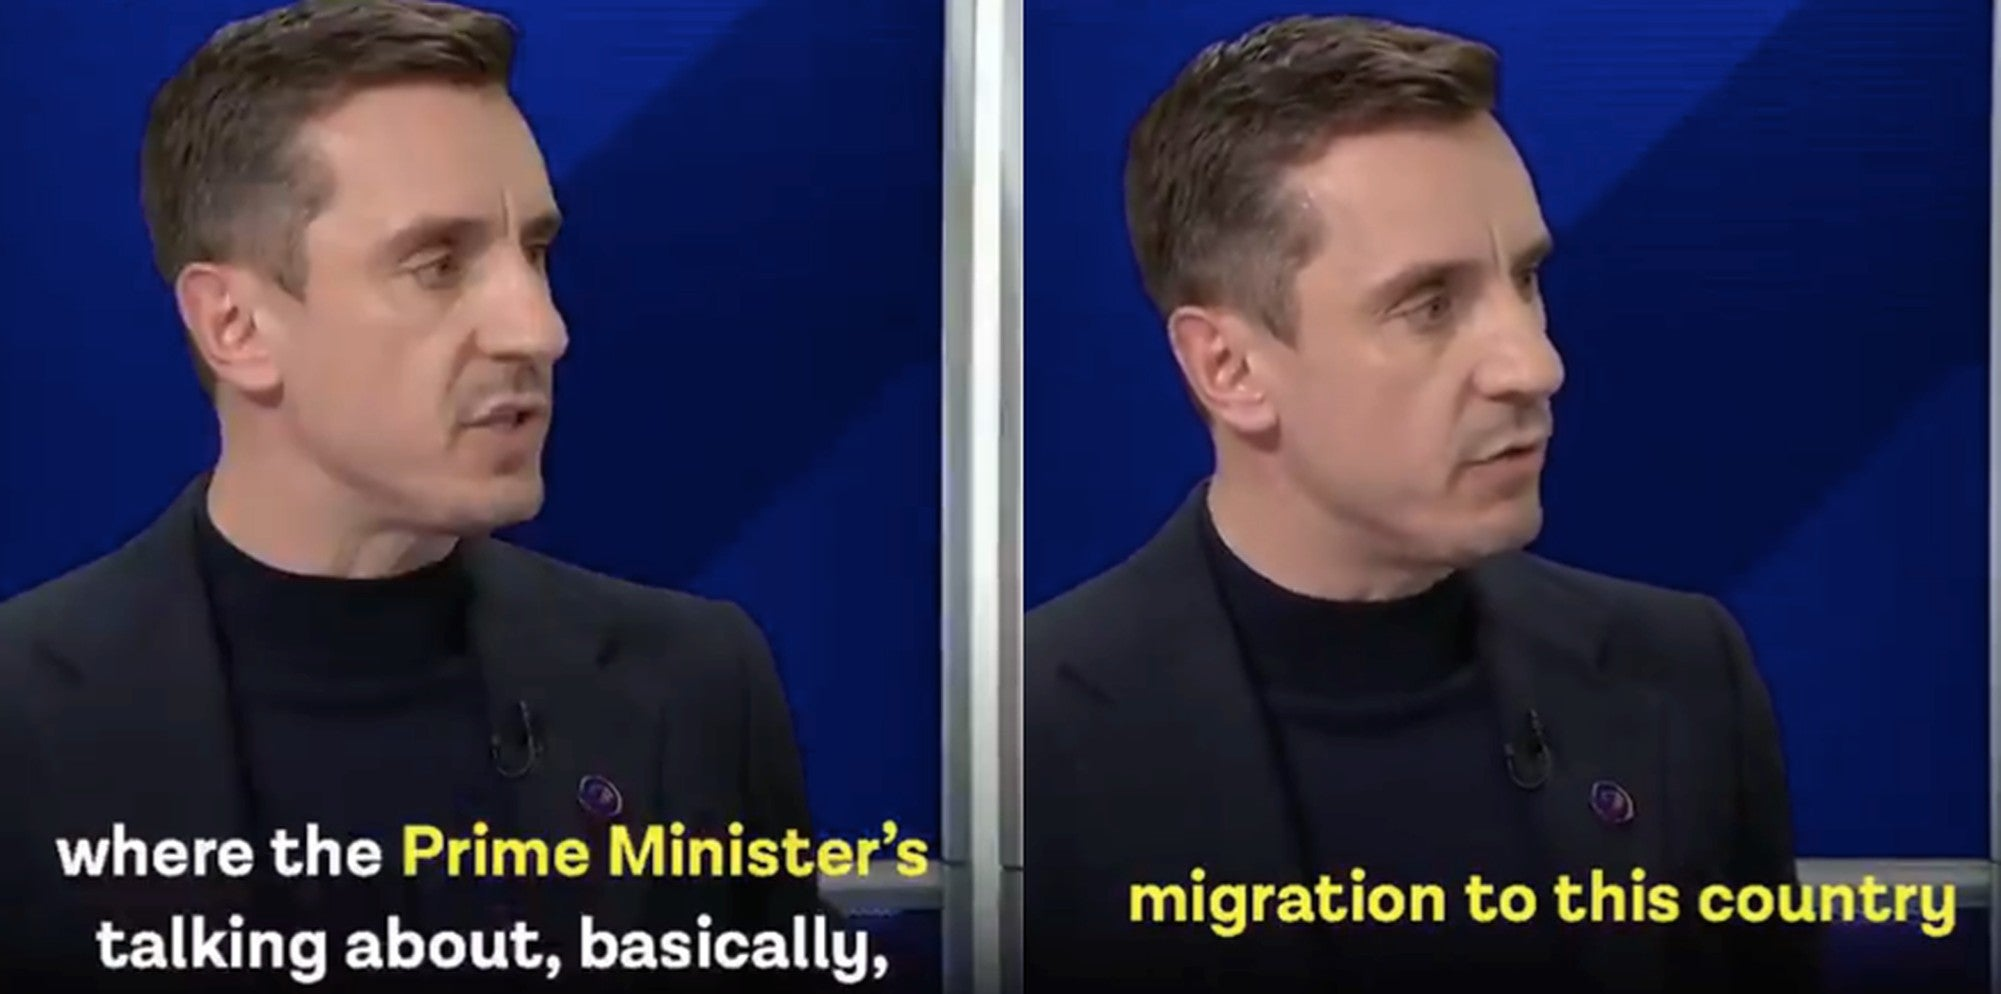 Gary Neville was asked why racism in football is rising. He pointed the finger at Boris Johnson